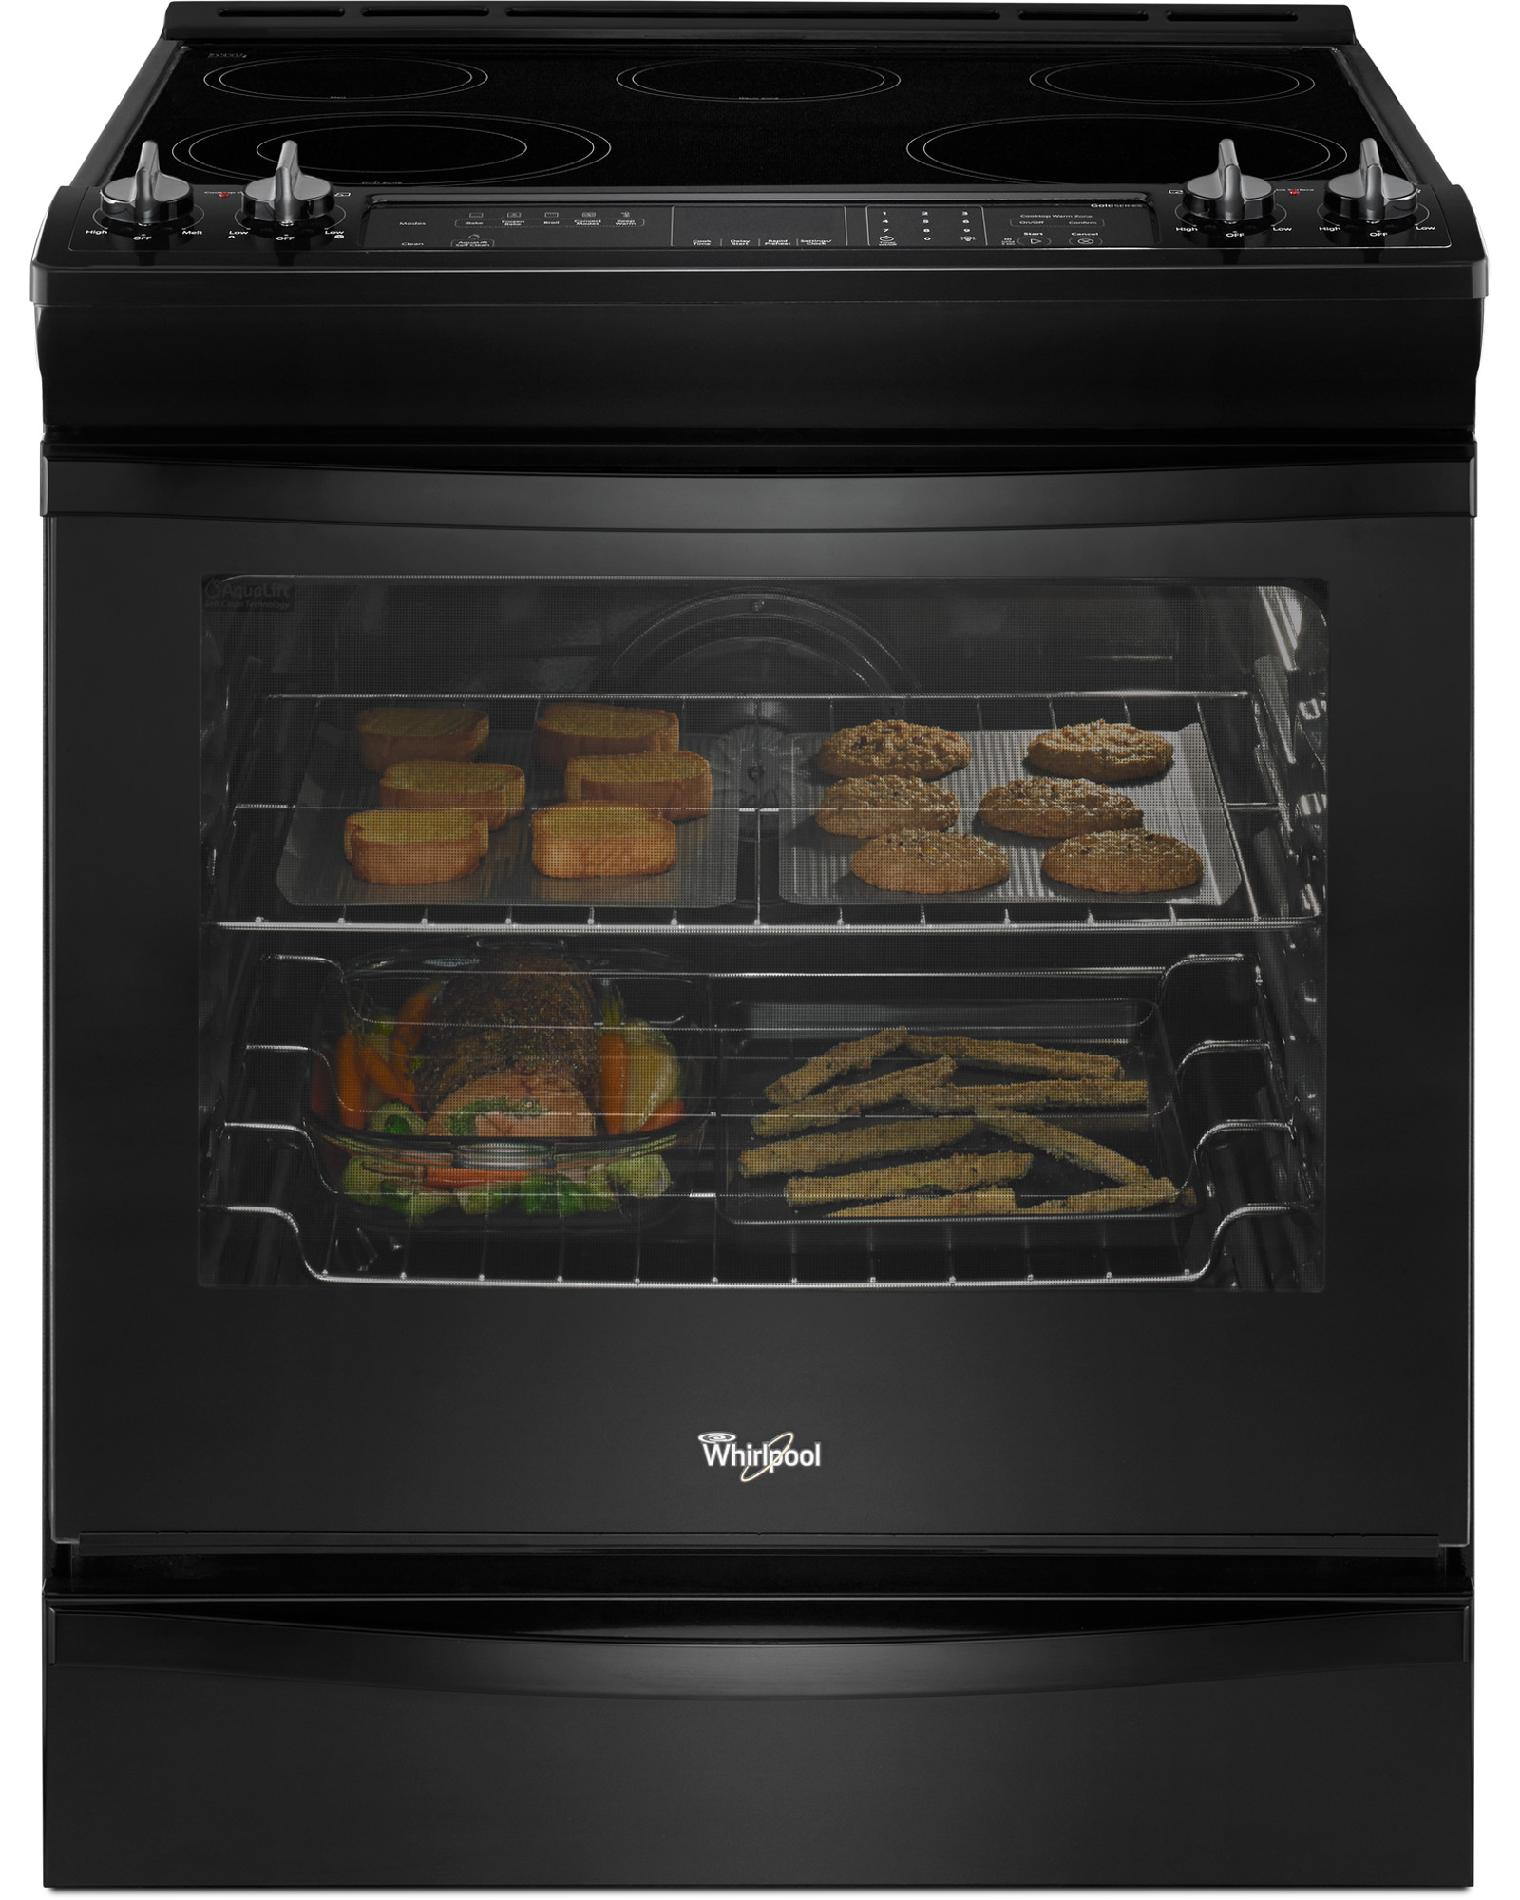 Whirlpool WEE730H0DB 6.2 cu. ft. Slide-In Electric Range w/ TimeSavor™ Convection - Black